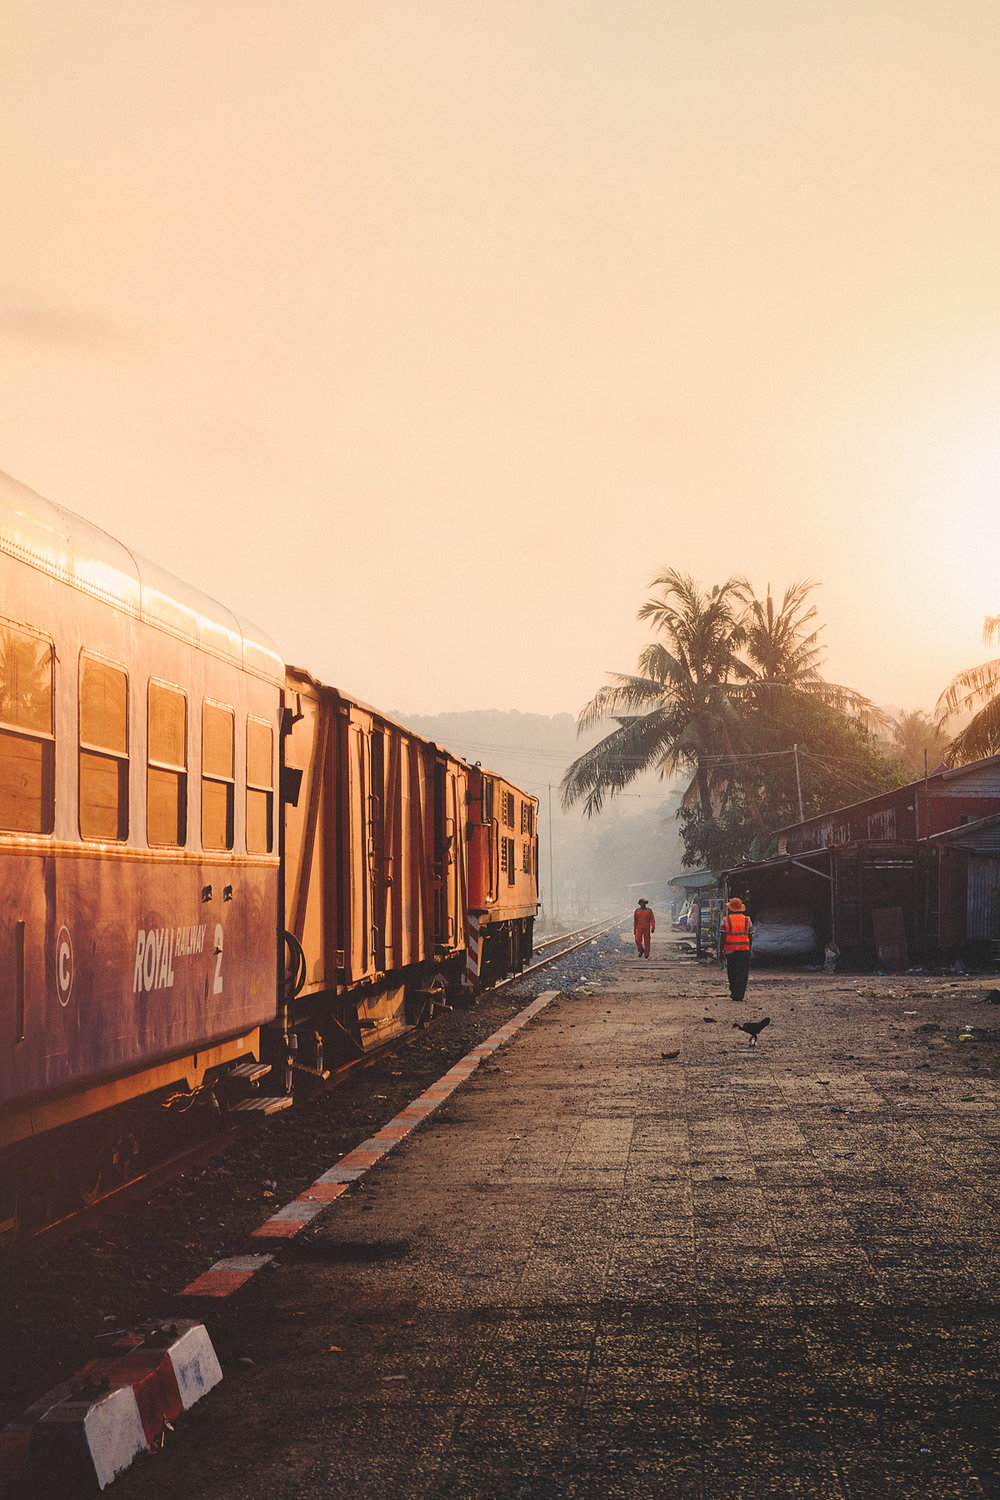 Beautiful morning and sunrise at the railway station in Sihanoukville.